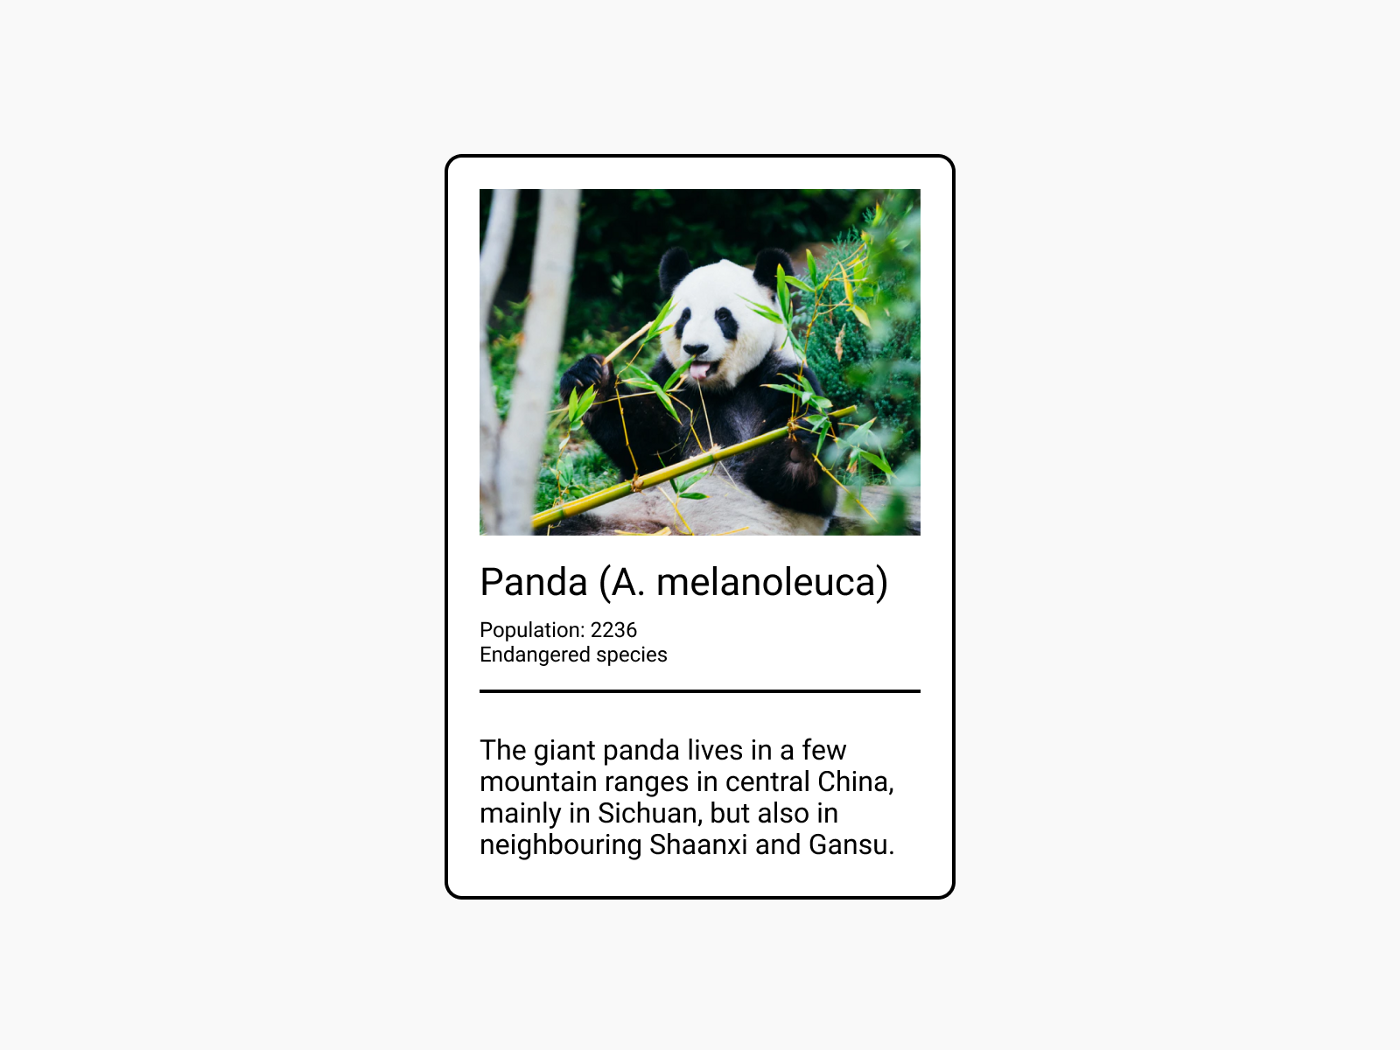 An example of how a card containing information about a panda could be designed.